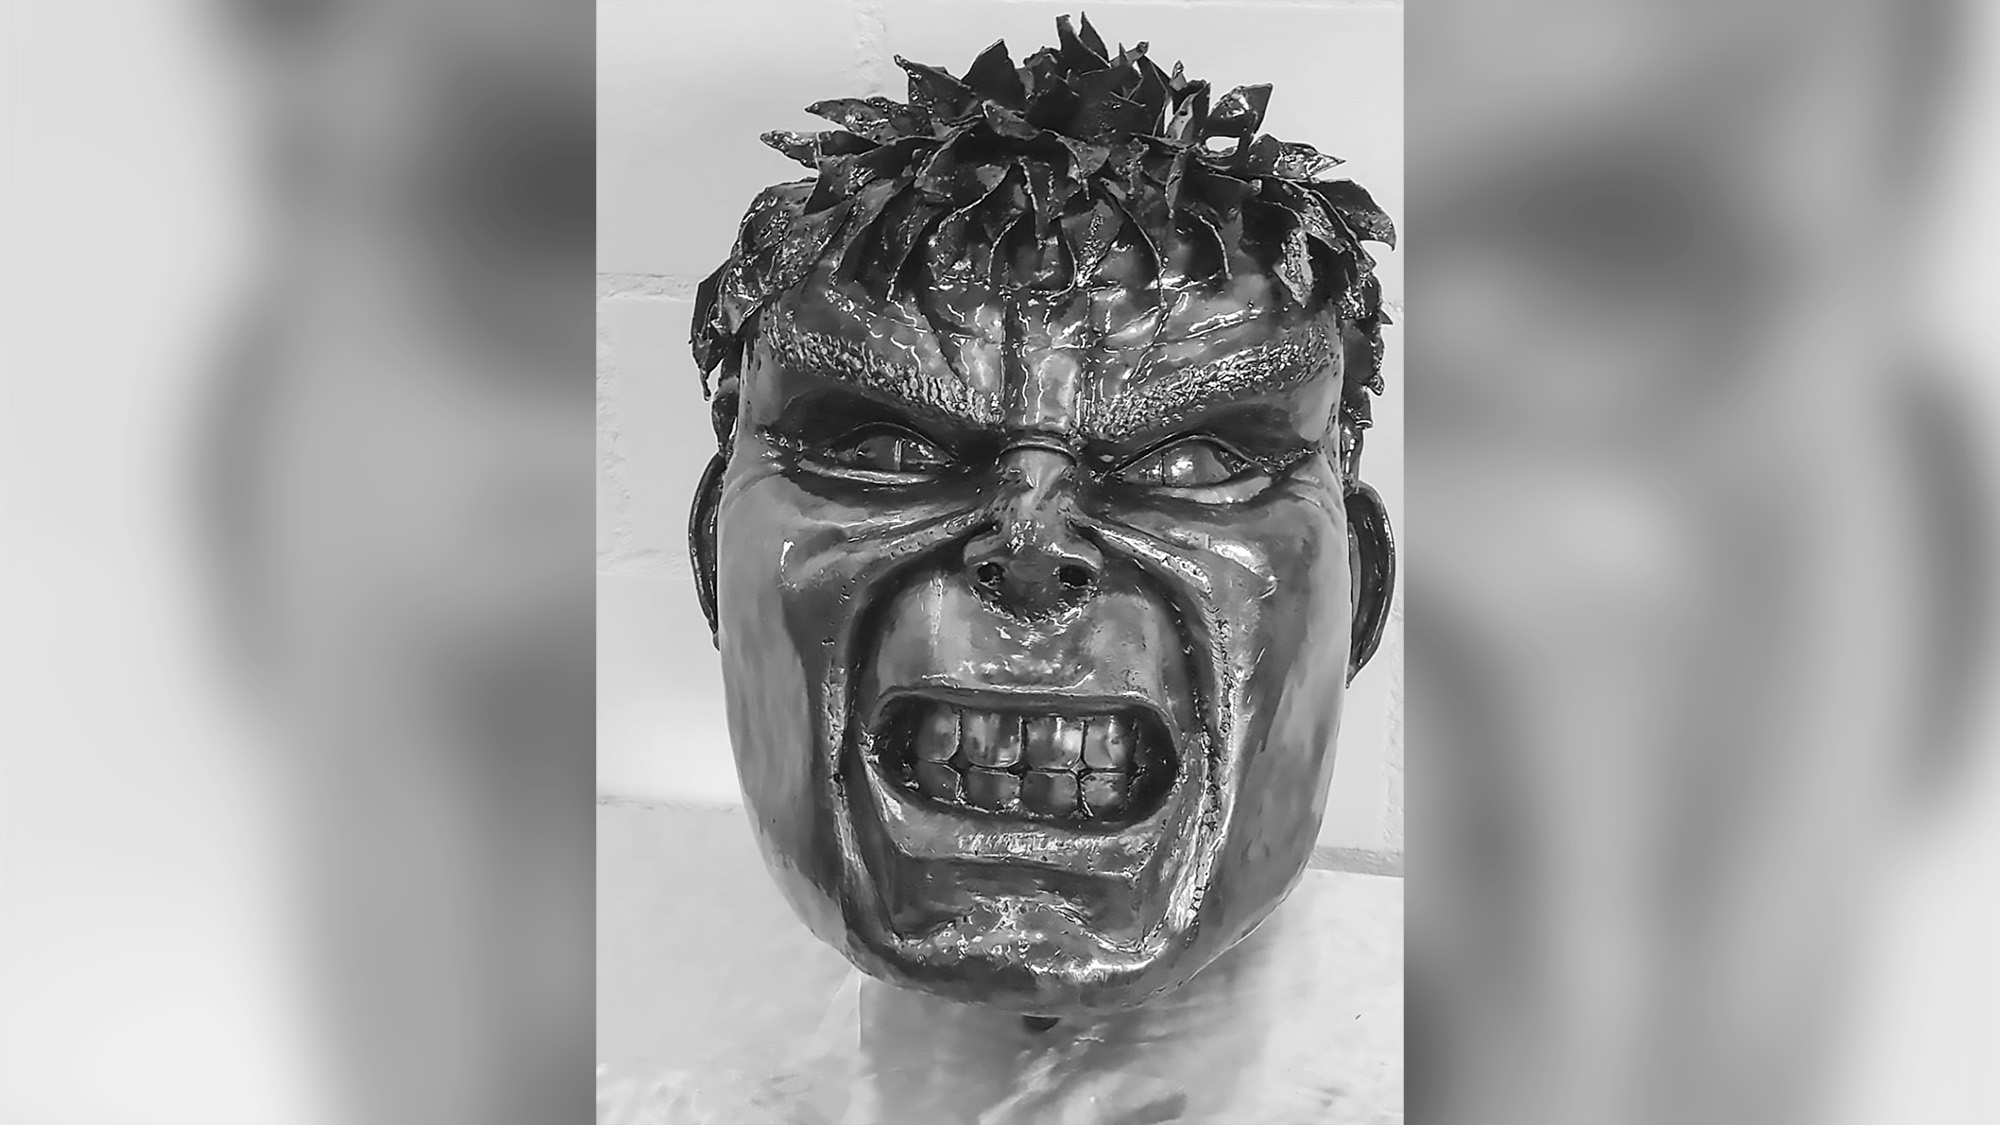 10k GBP Hulk Statue Head Returns But Artist Keeps Reward